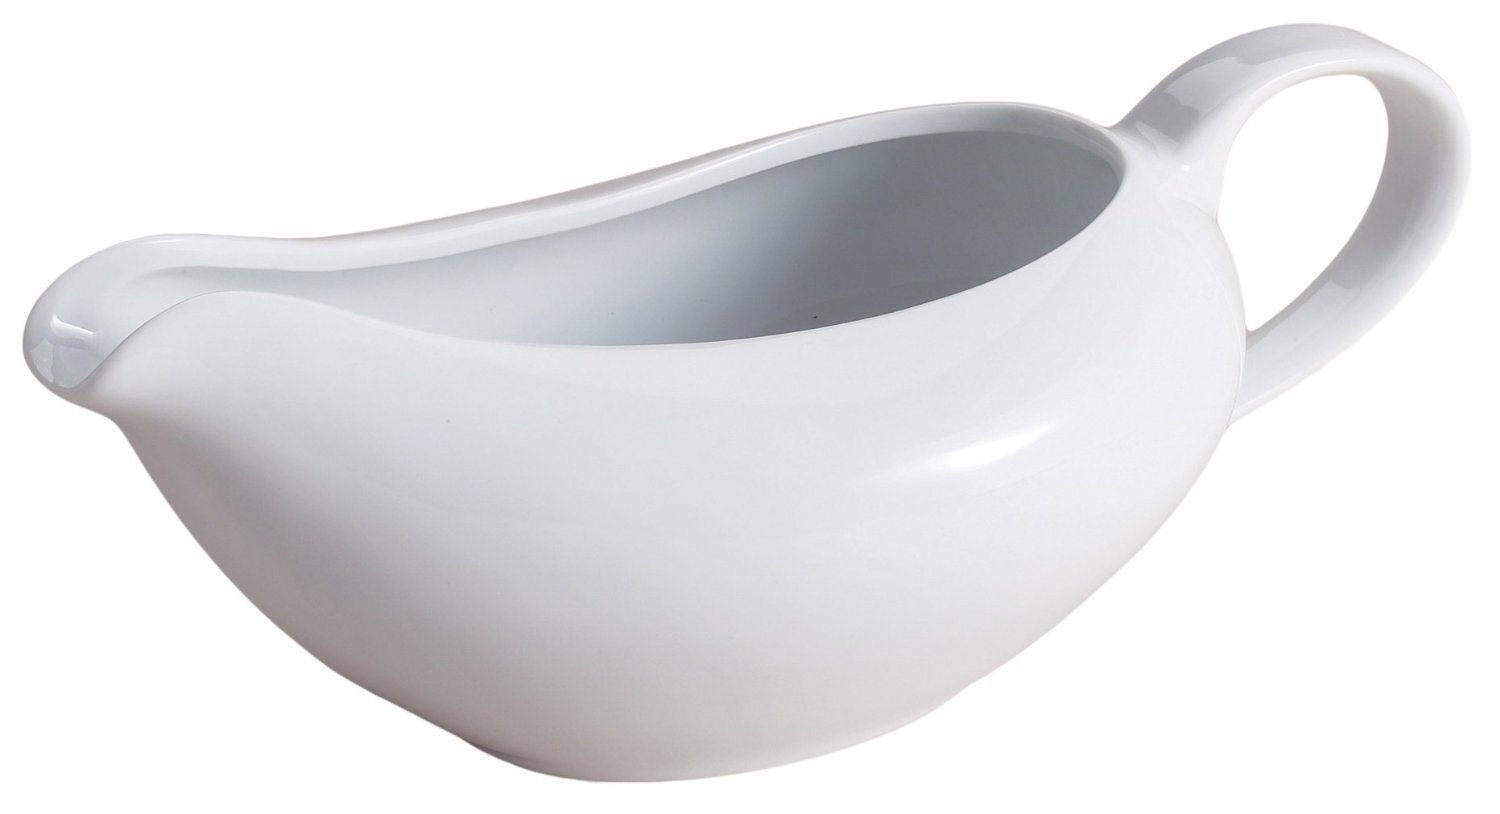 Porcelain Coupe Shaped Gravy Sauce Boat, 18-Ounce COMINHKPR141729